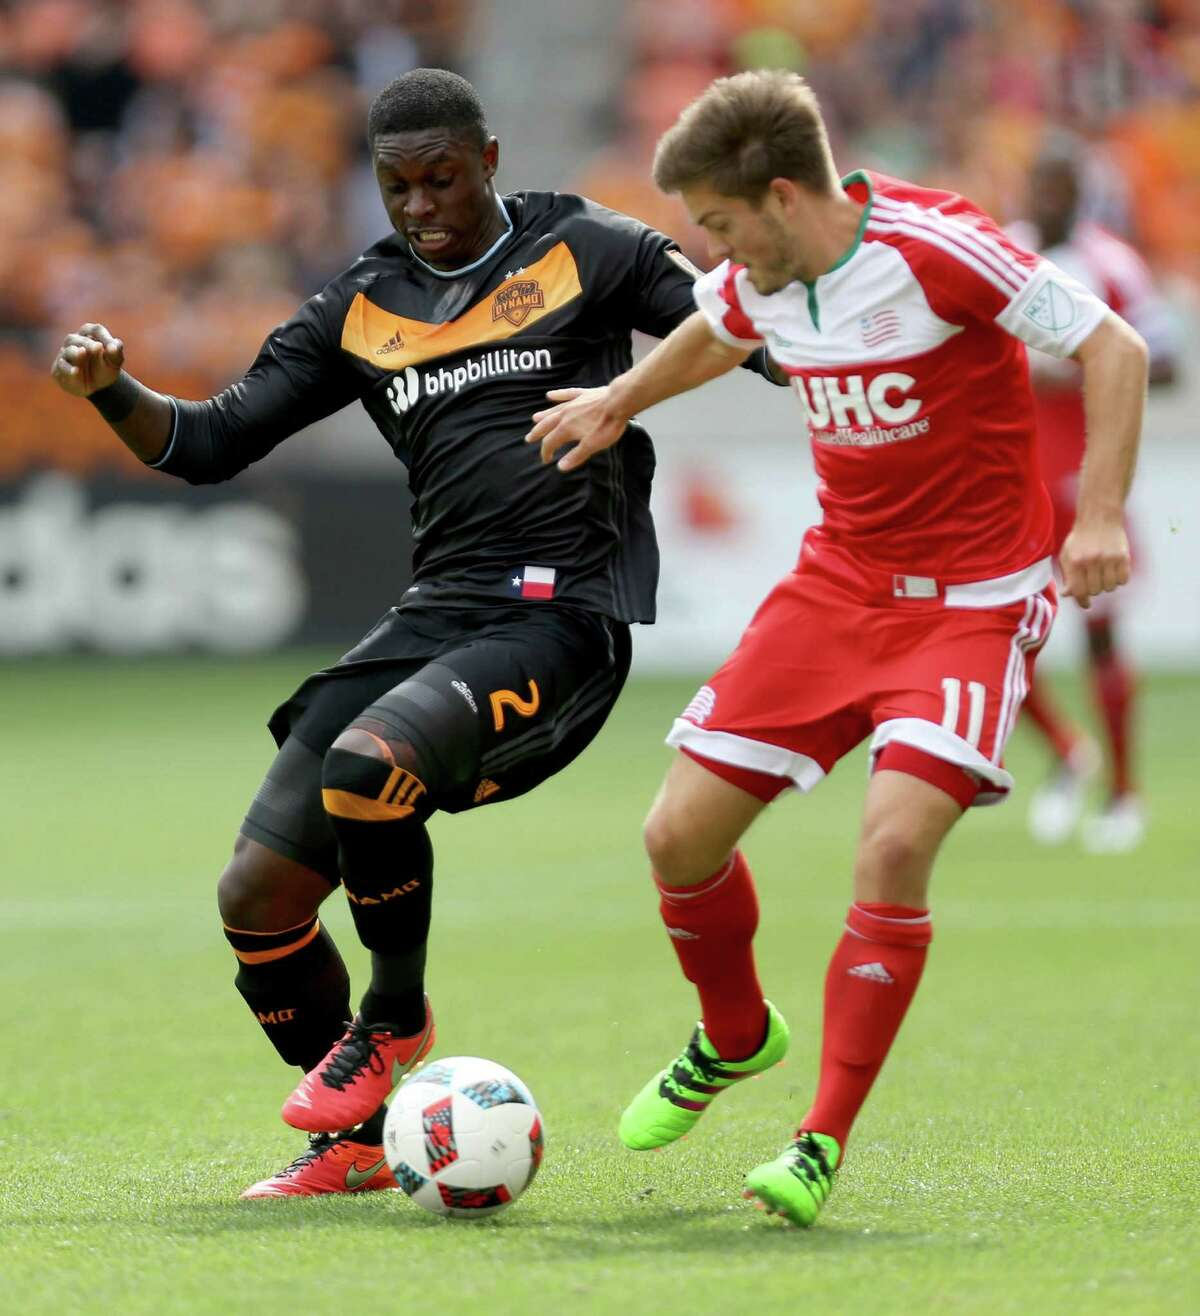 Houston Dynamo defender Jalil Anibaba (2) and New England Revolution midfielder Kelyn Rowe (11) in the first half at BBVA Compass Stadium Sunday, March 6, 2016, in Houston.